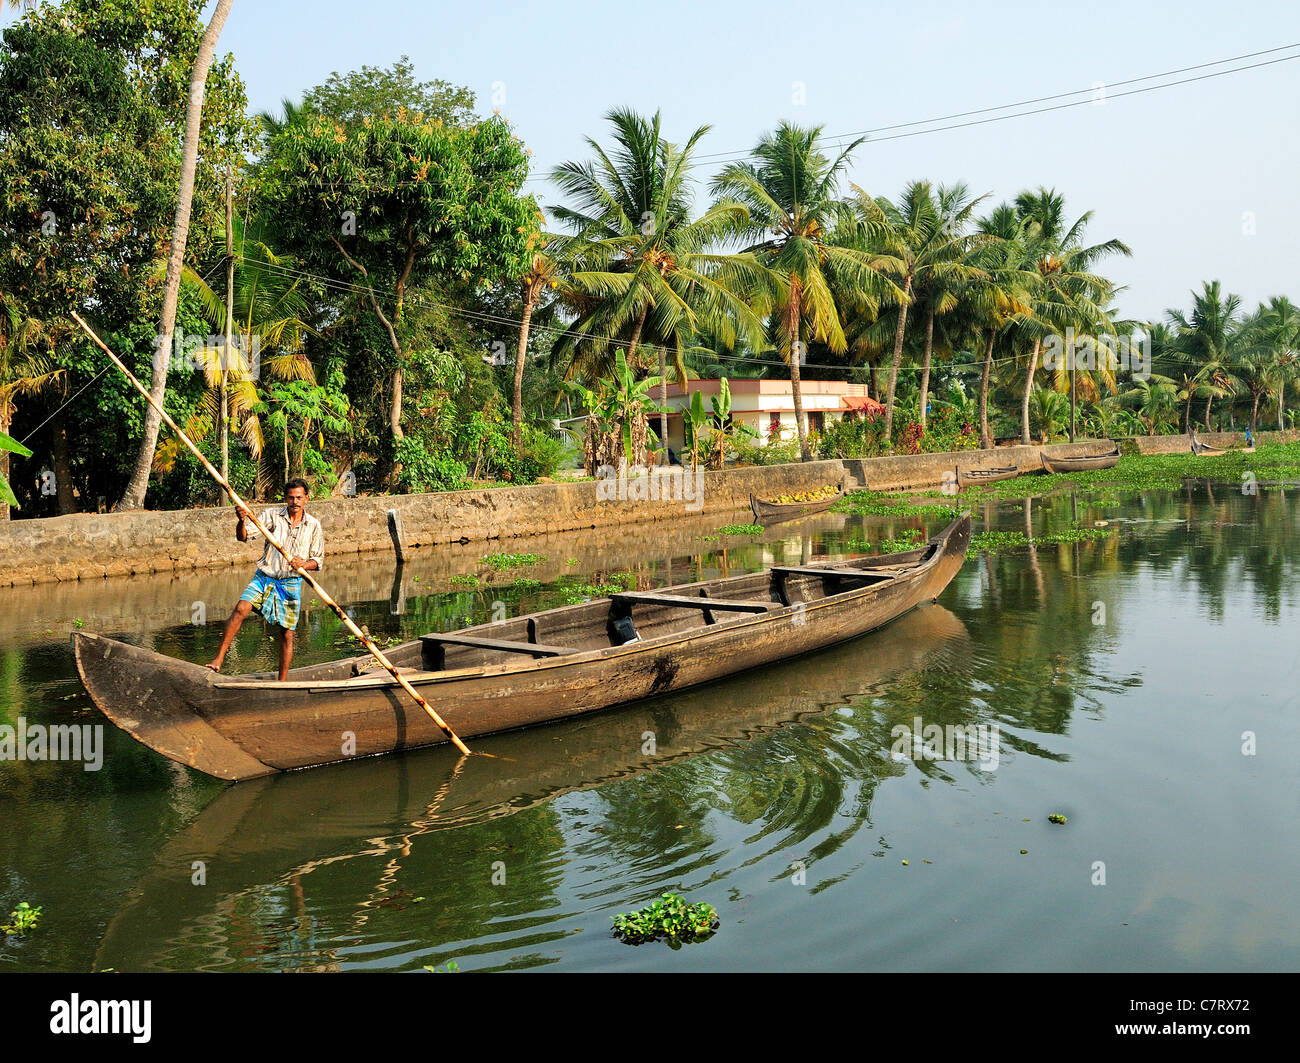 Man punting his empty work canoe along the back waters of Kerala India - Stock Image